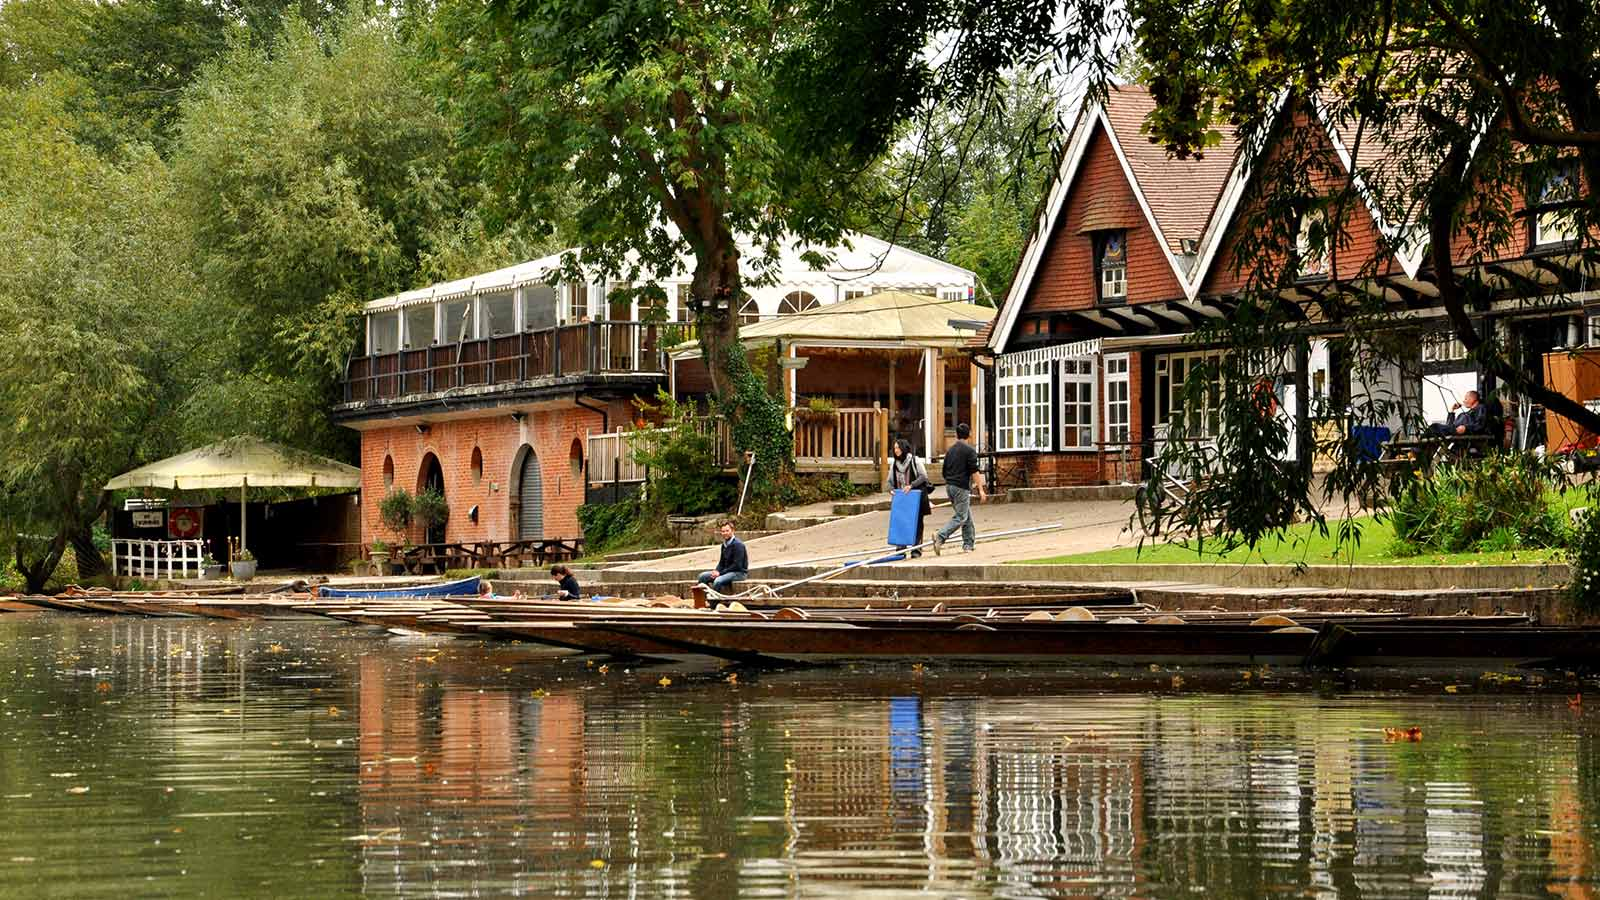 The Cherwell Boathouse: riverside dining